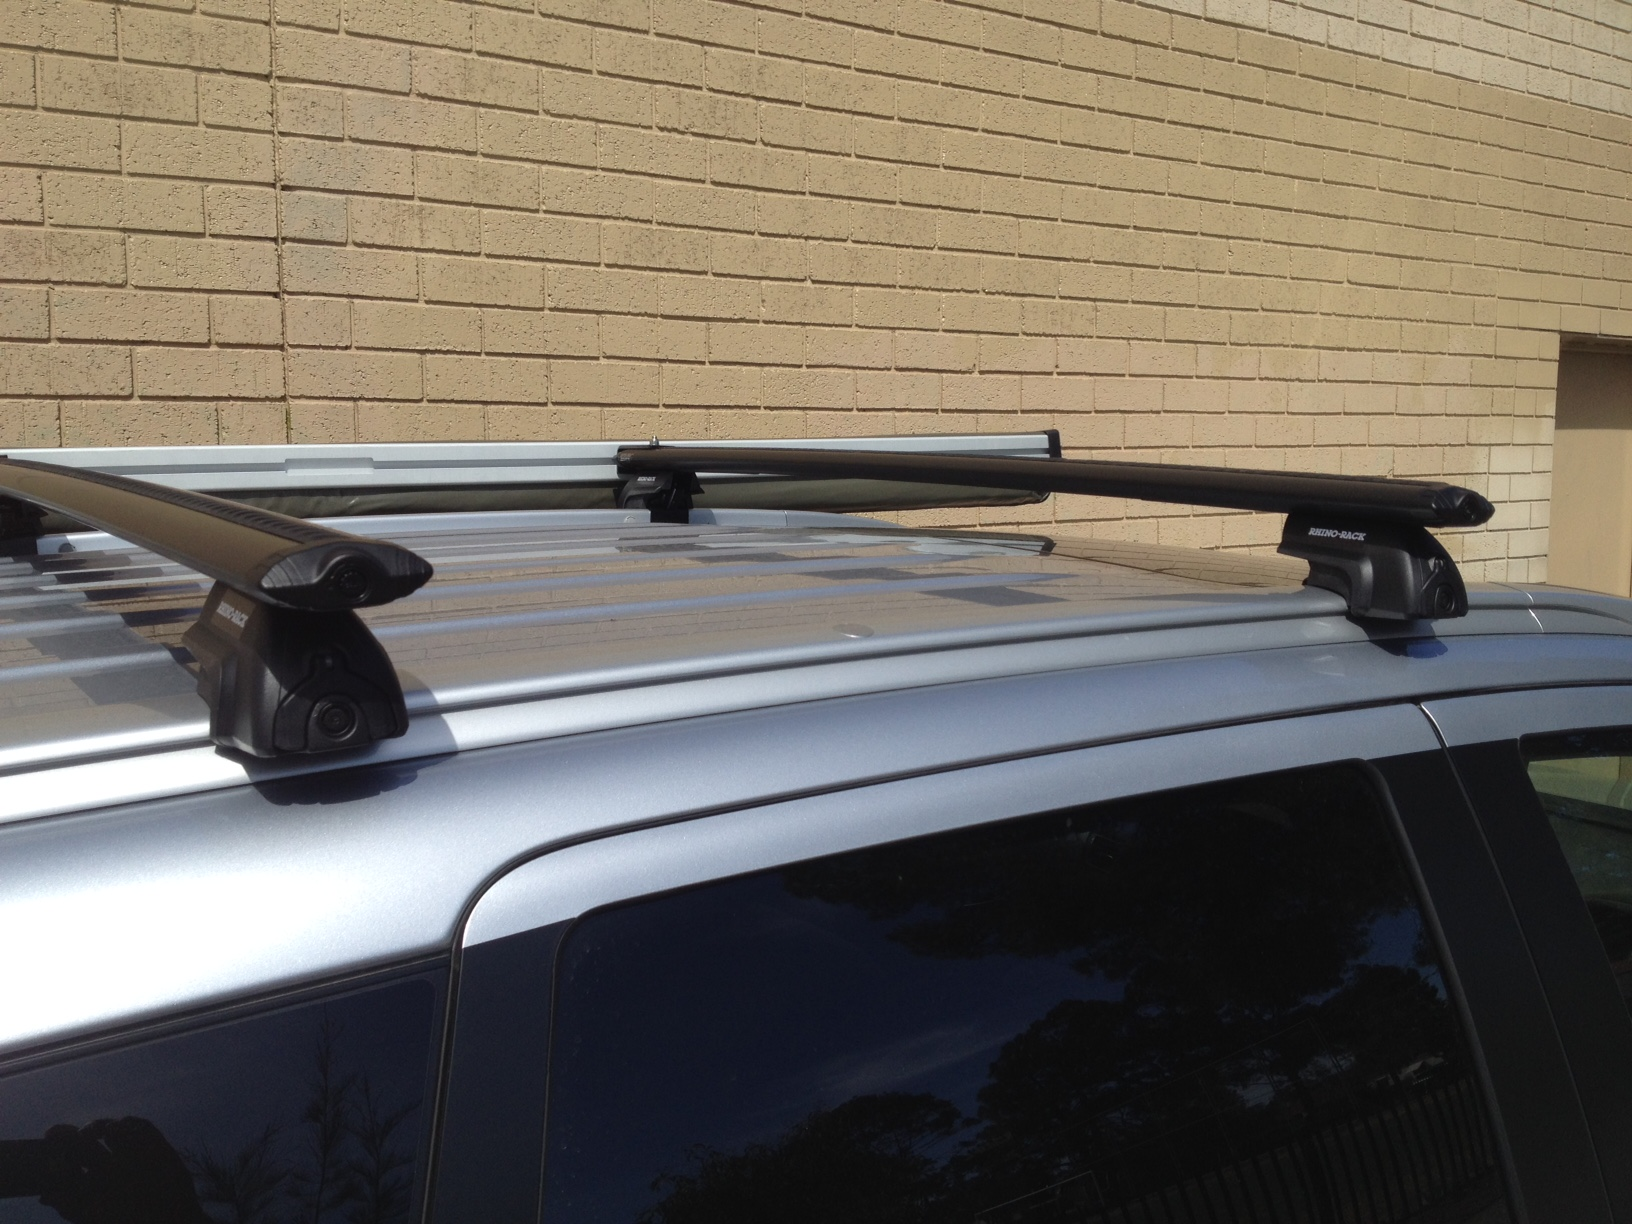 Mitsubishi Outlander 4dr Wagon With Flush Rails Zj 11 12on